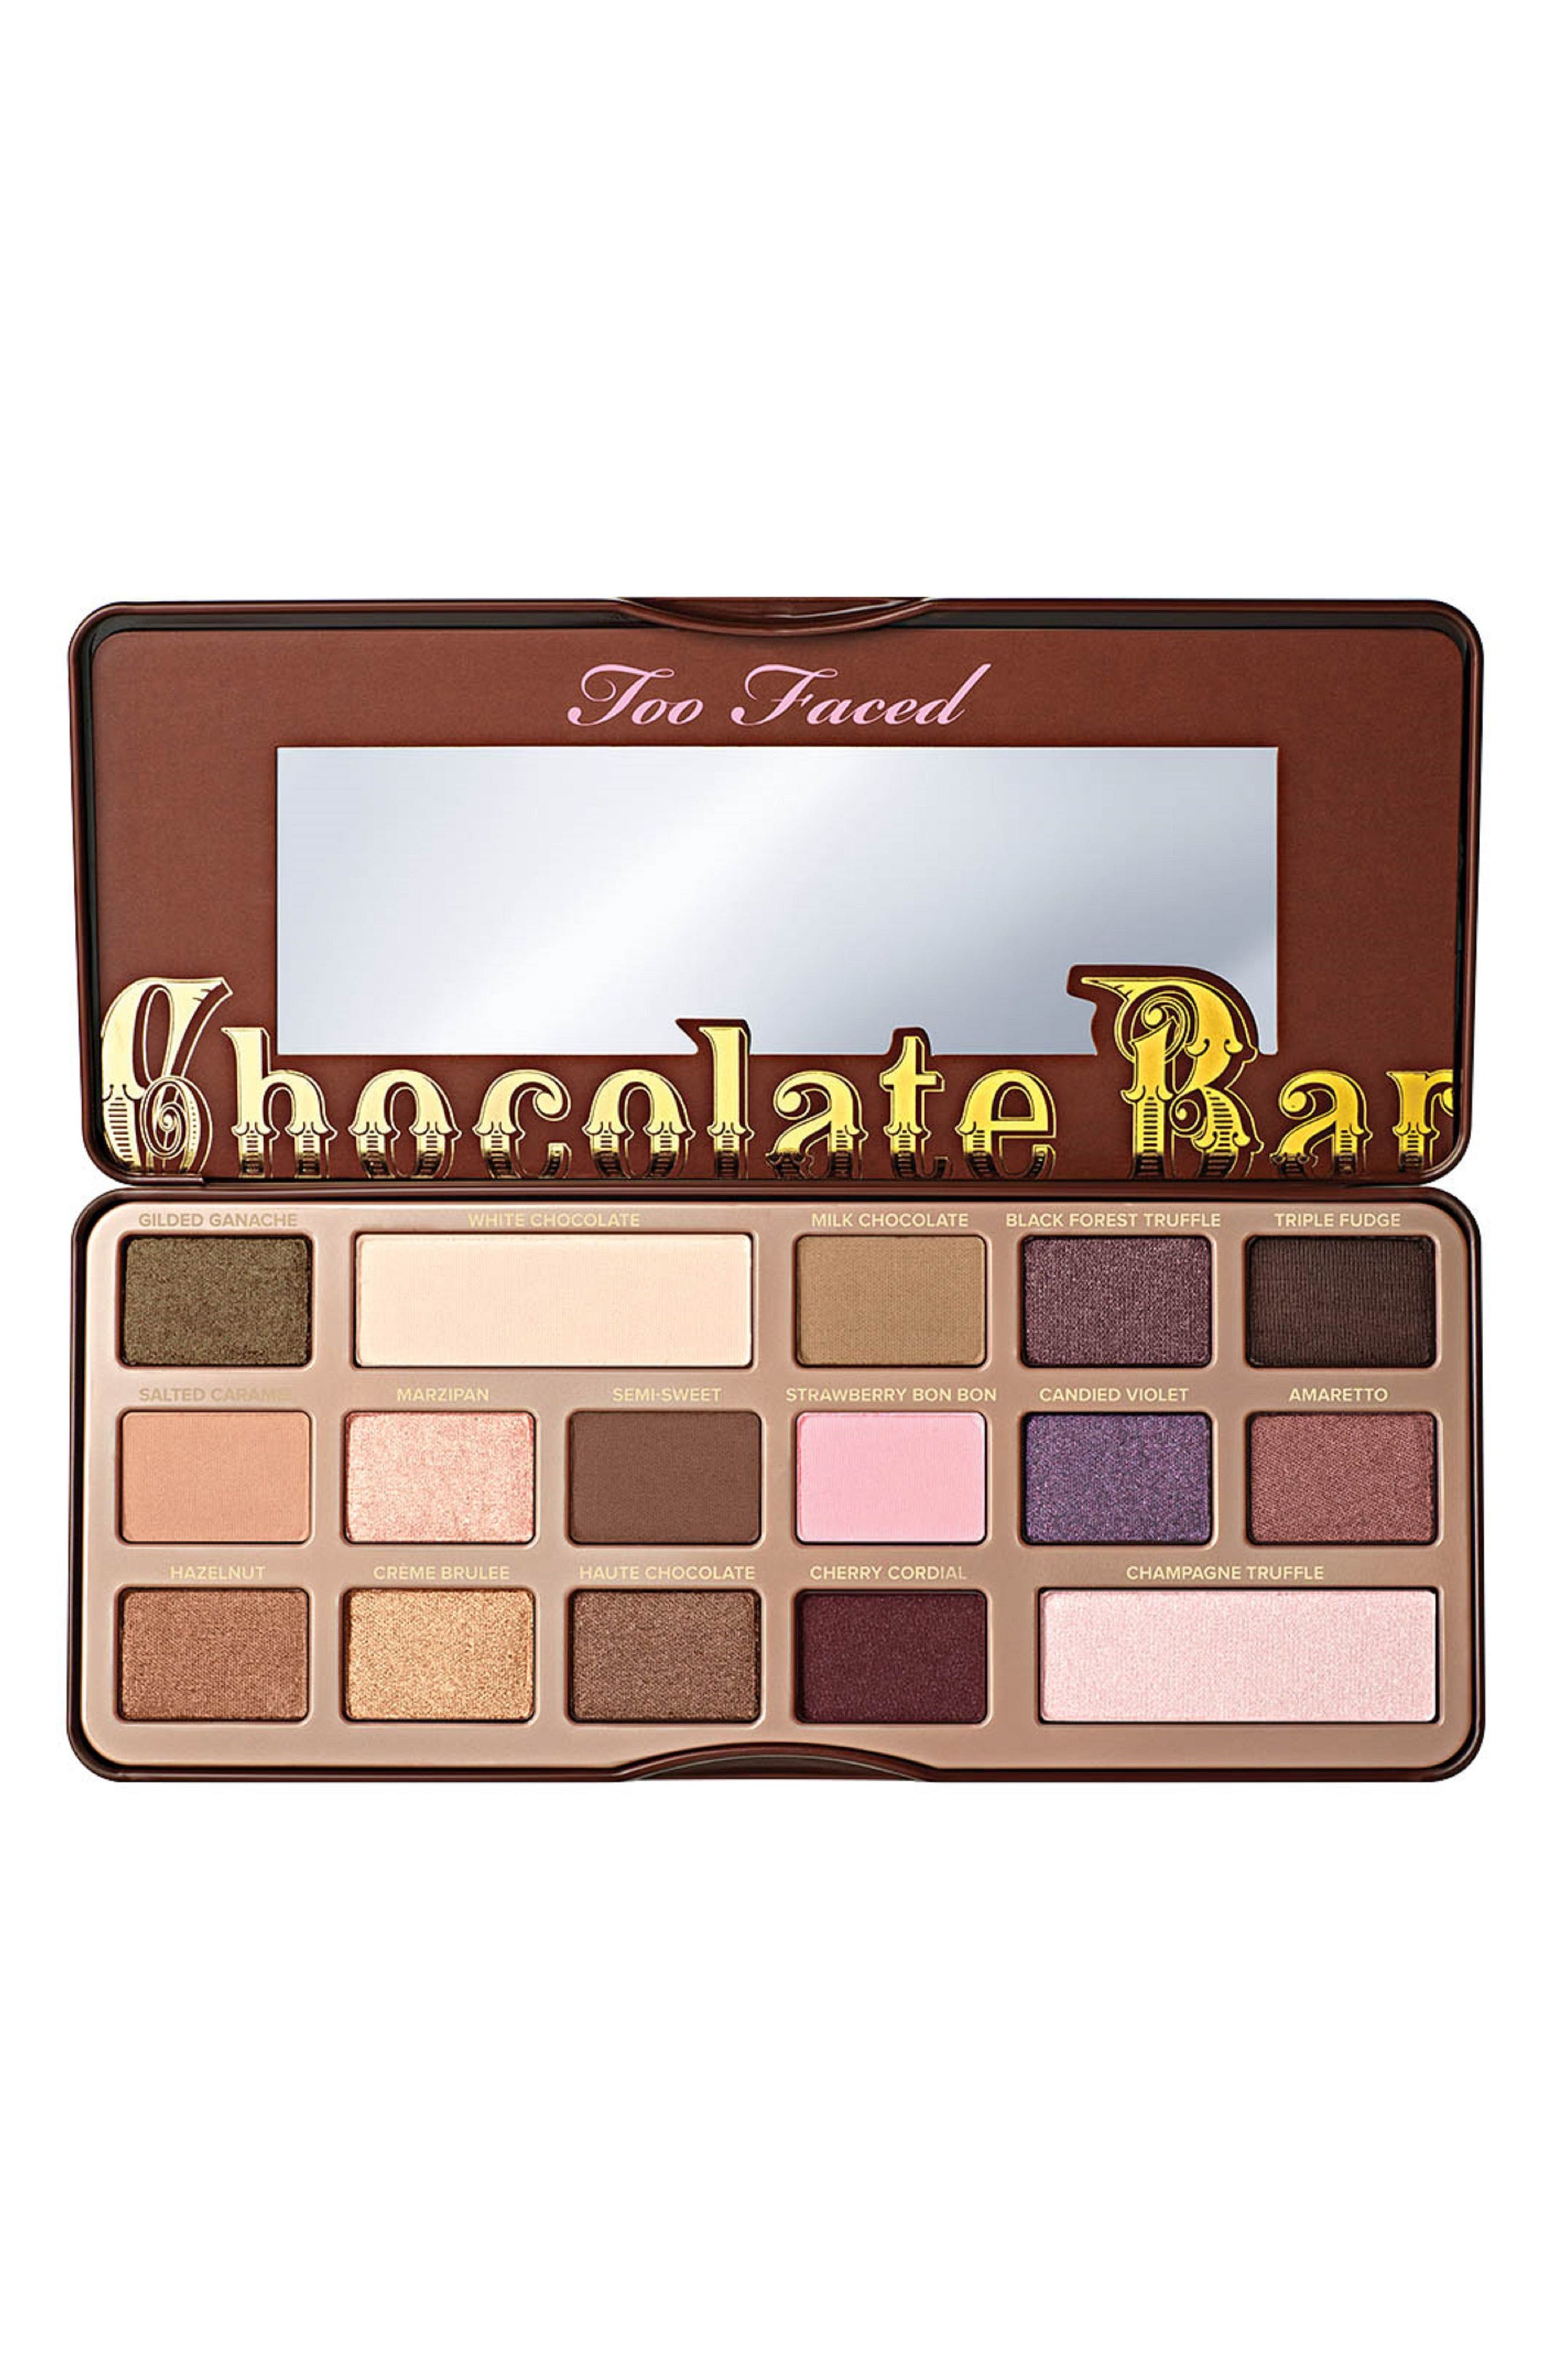 Chocolate Bar Eyeshadow Palette,                             Alternate thumbnail 8, color,                             No Color